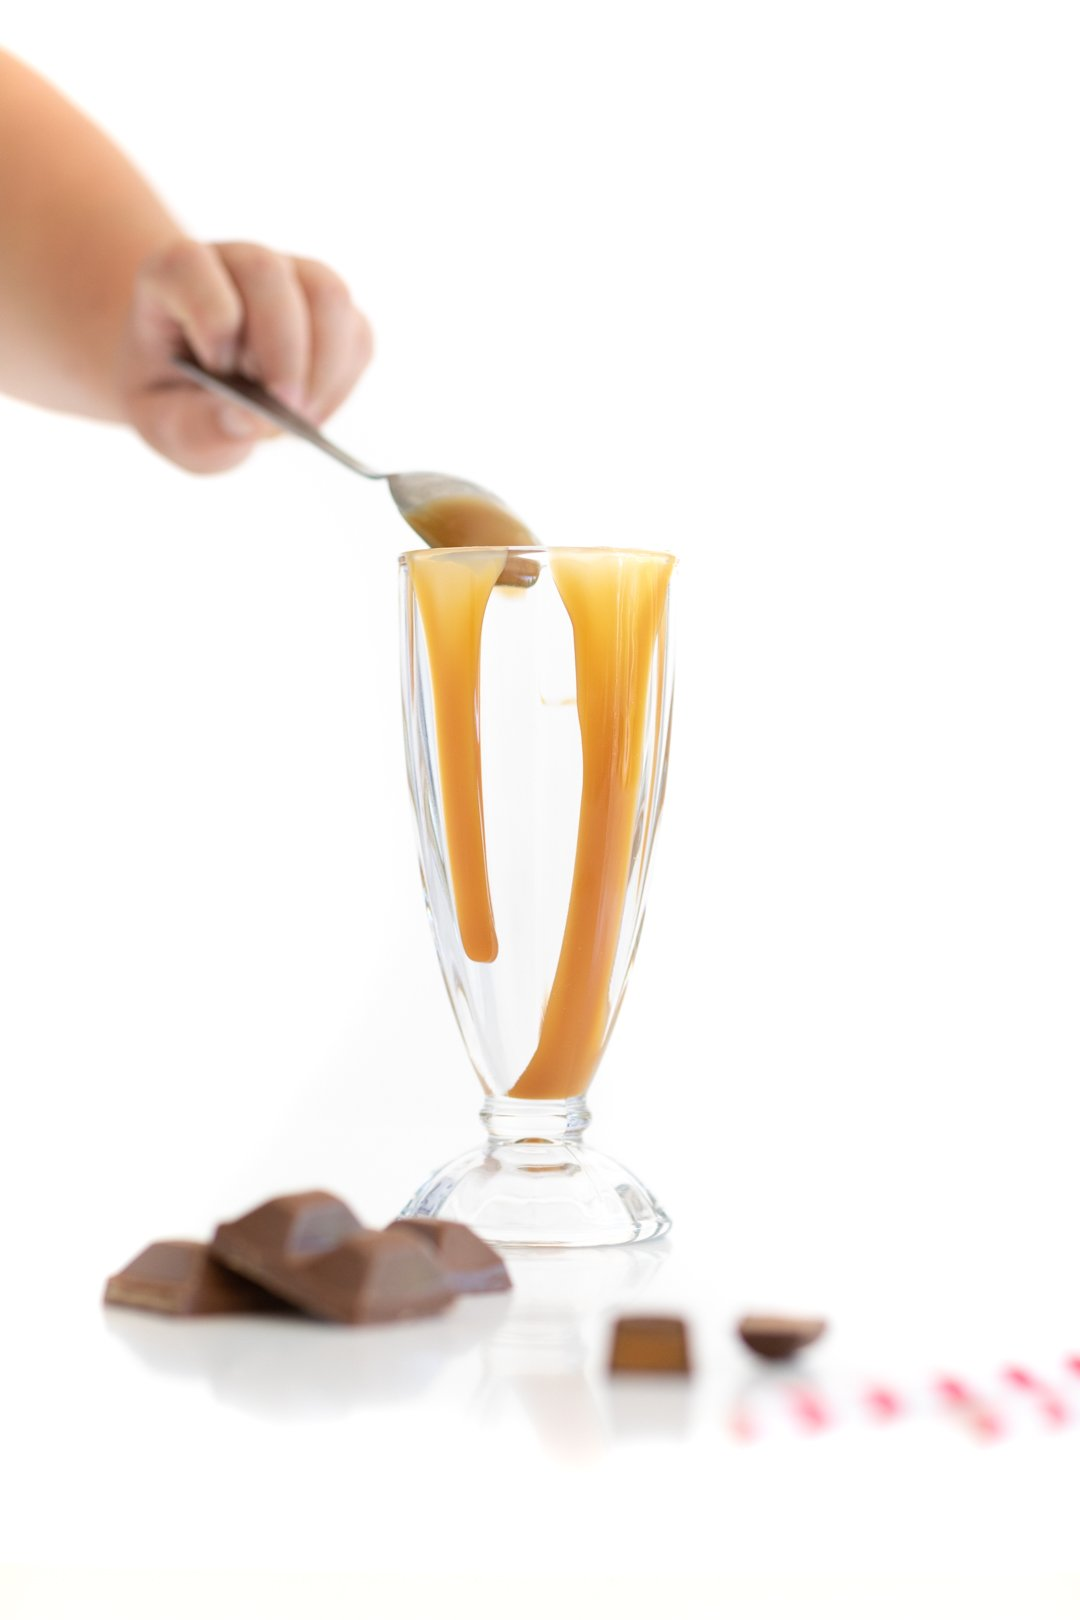 adding caramel to a glass to decorate